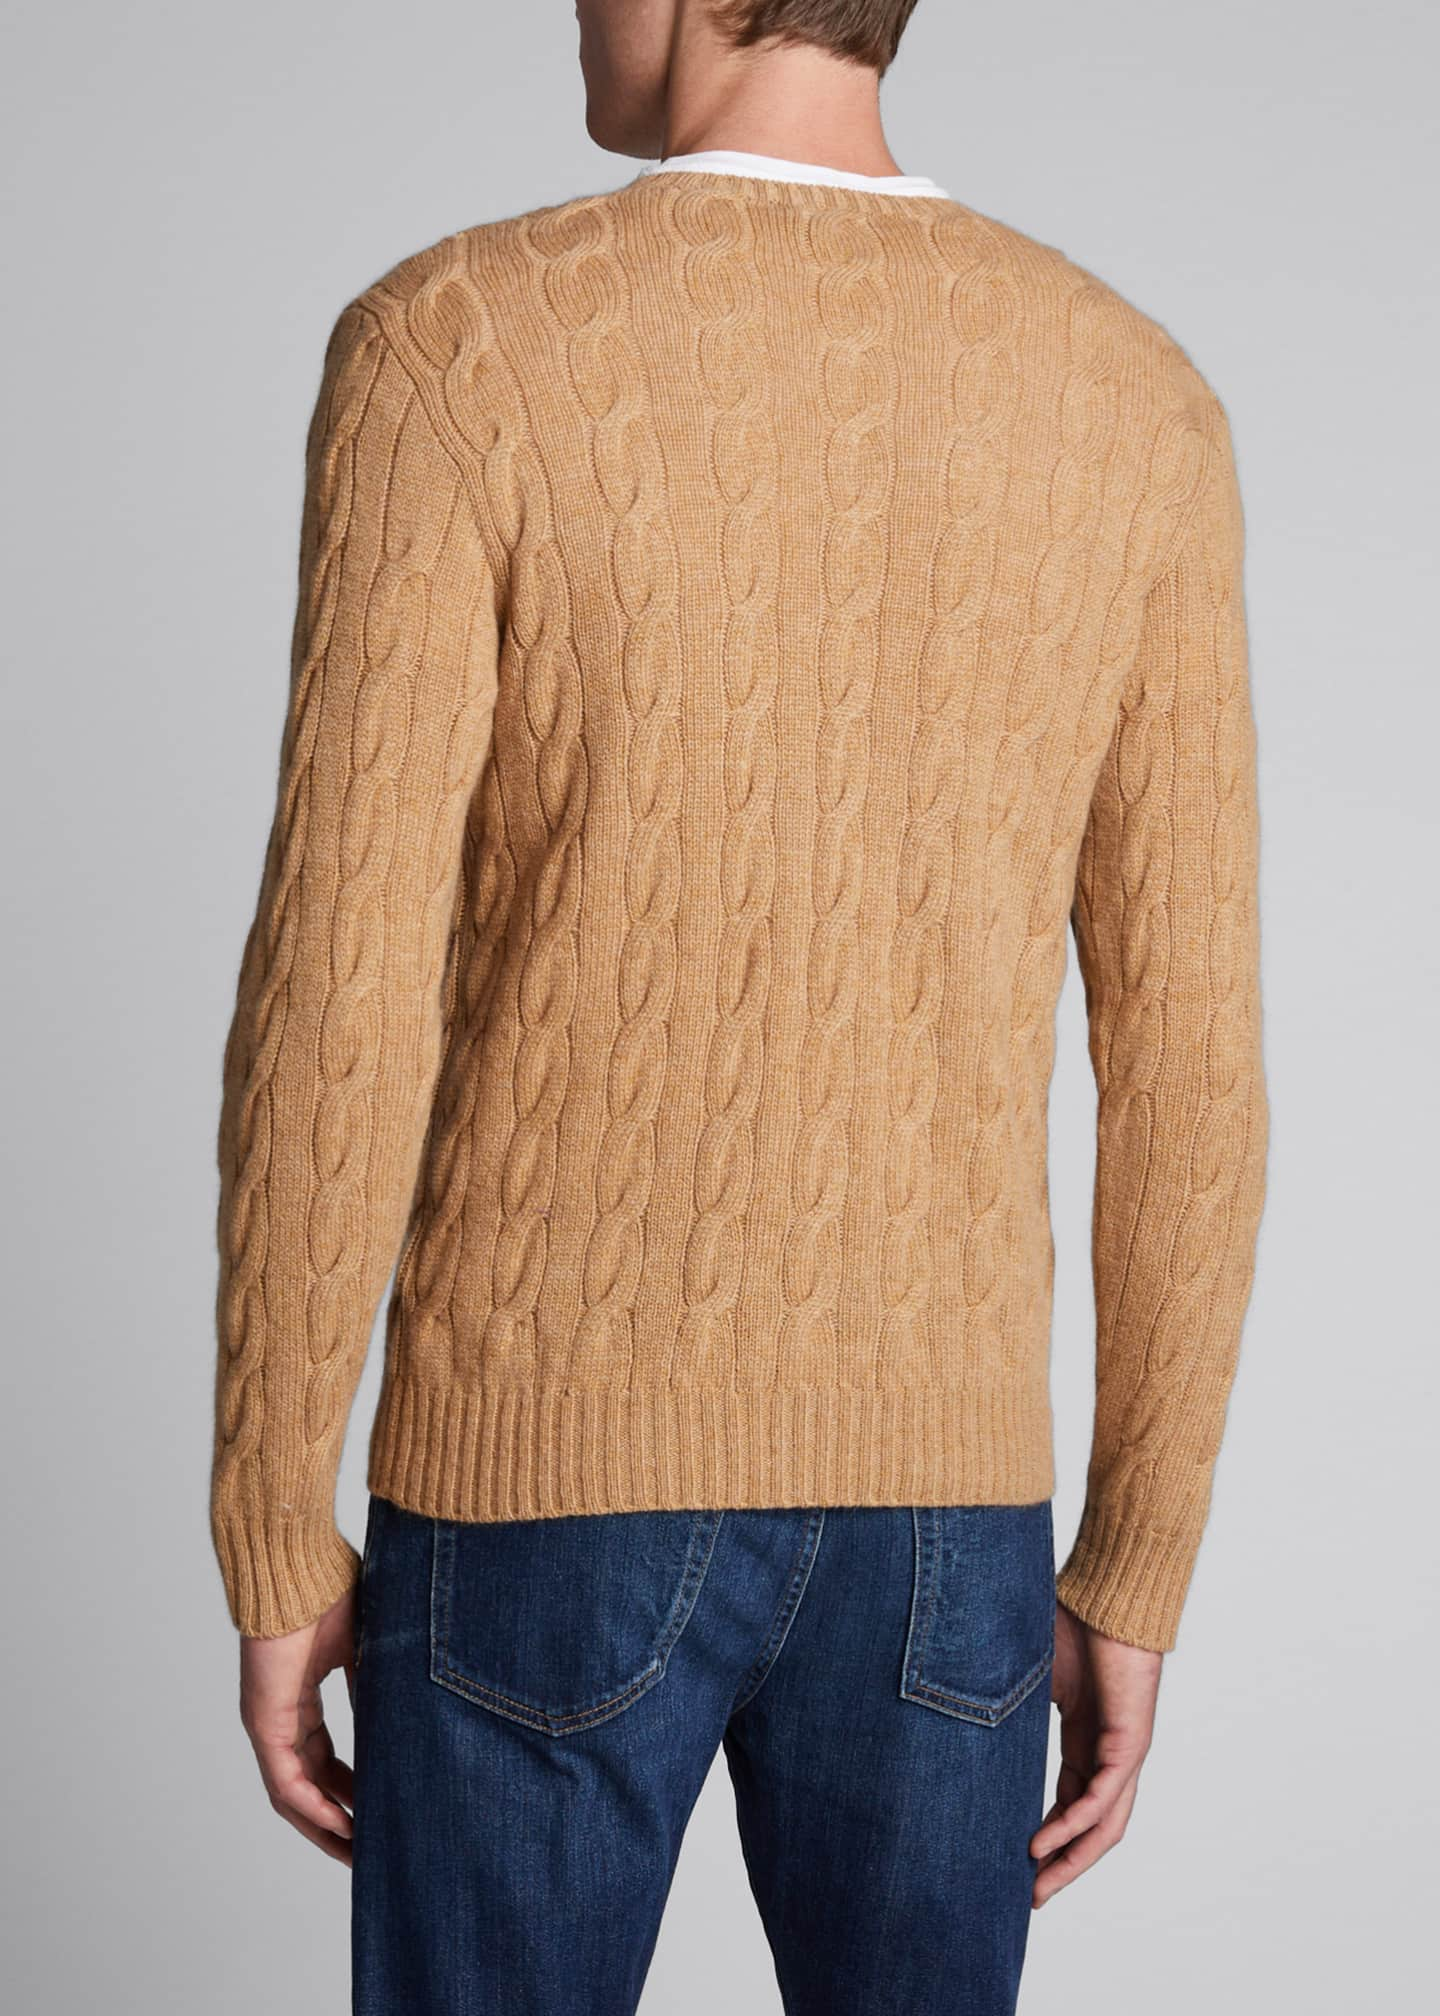 Image 2 of 4: Men's Cashmere Cable-Knit Crewneck Sweater, Beige